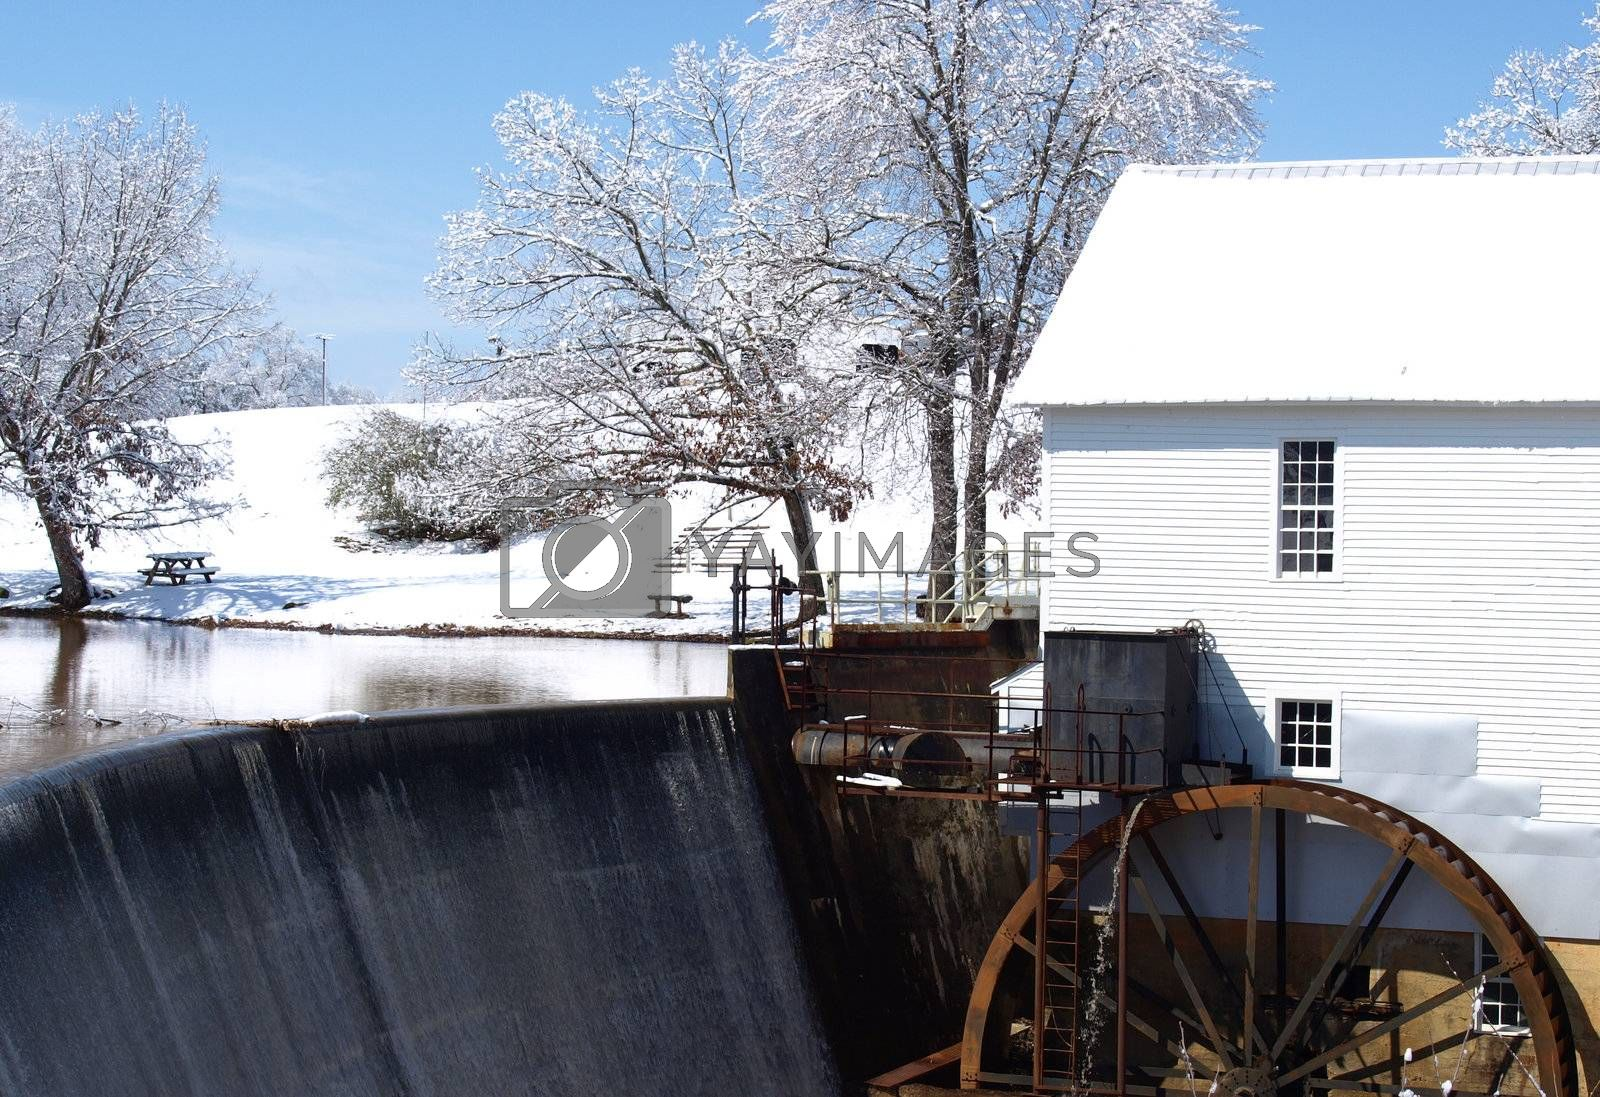 A mill during the winter of the year